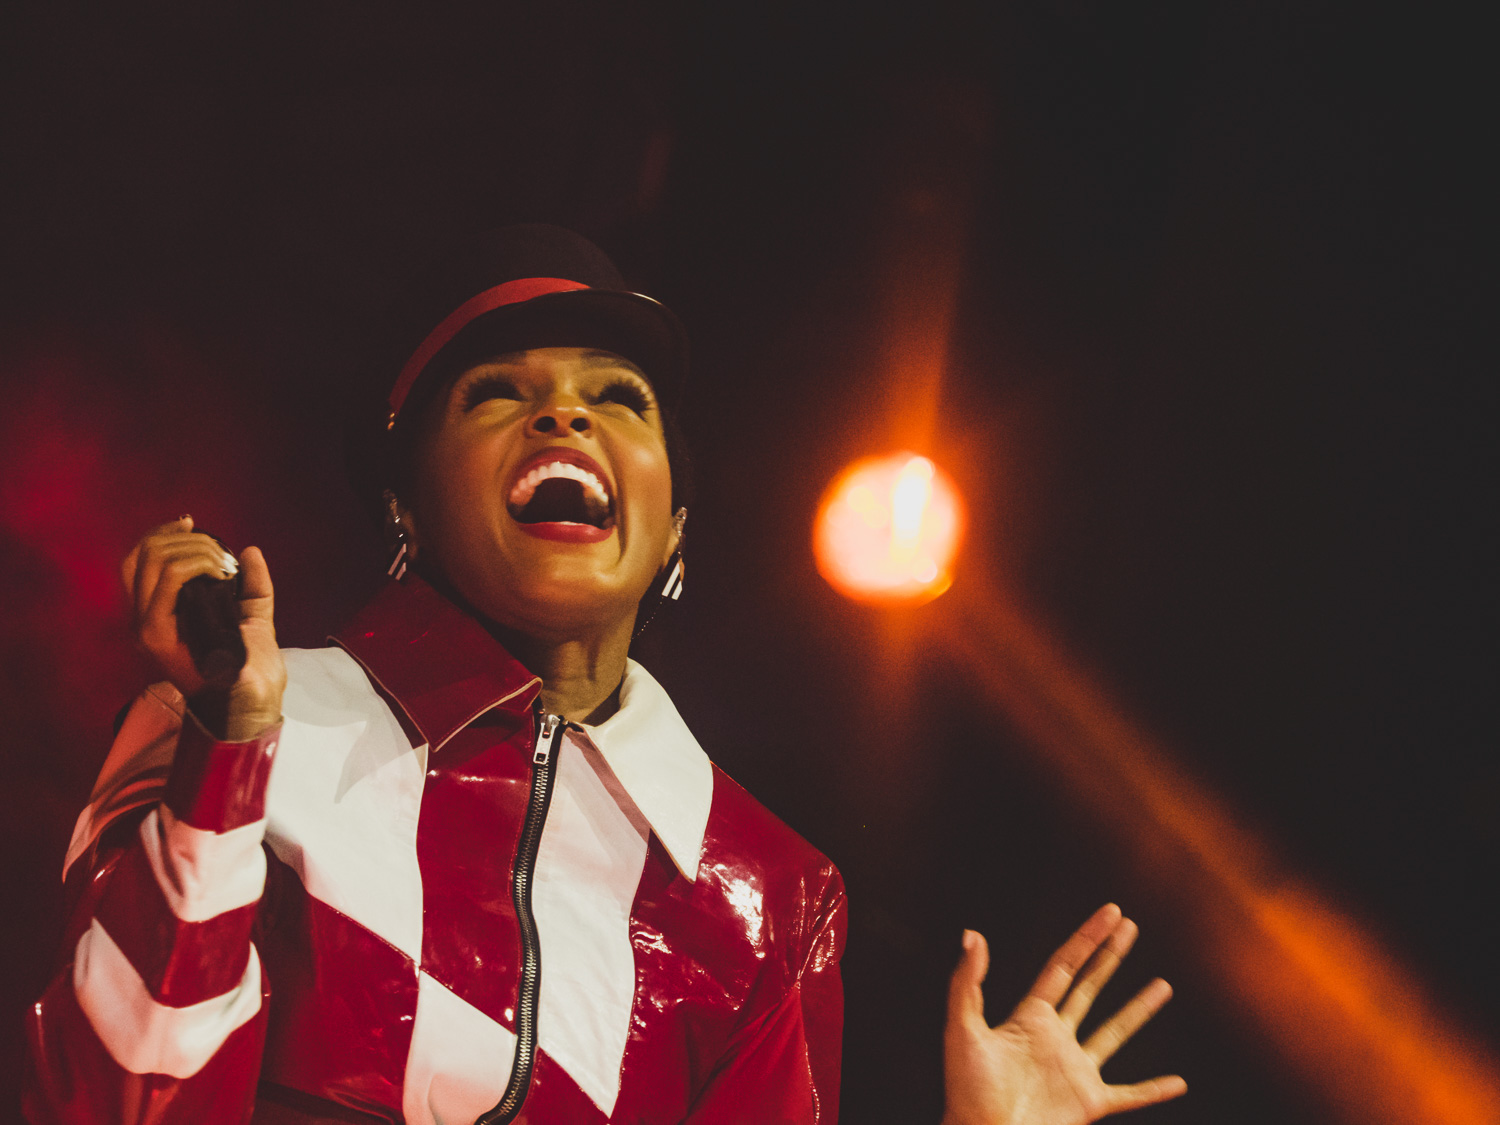 Janelle Monáe at Music Tastes Good, Long Beach, CA